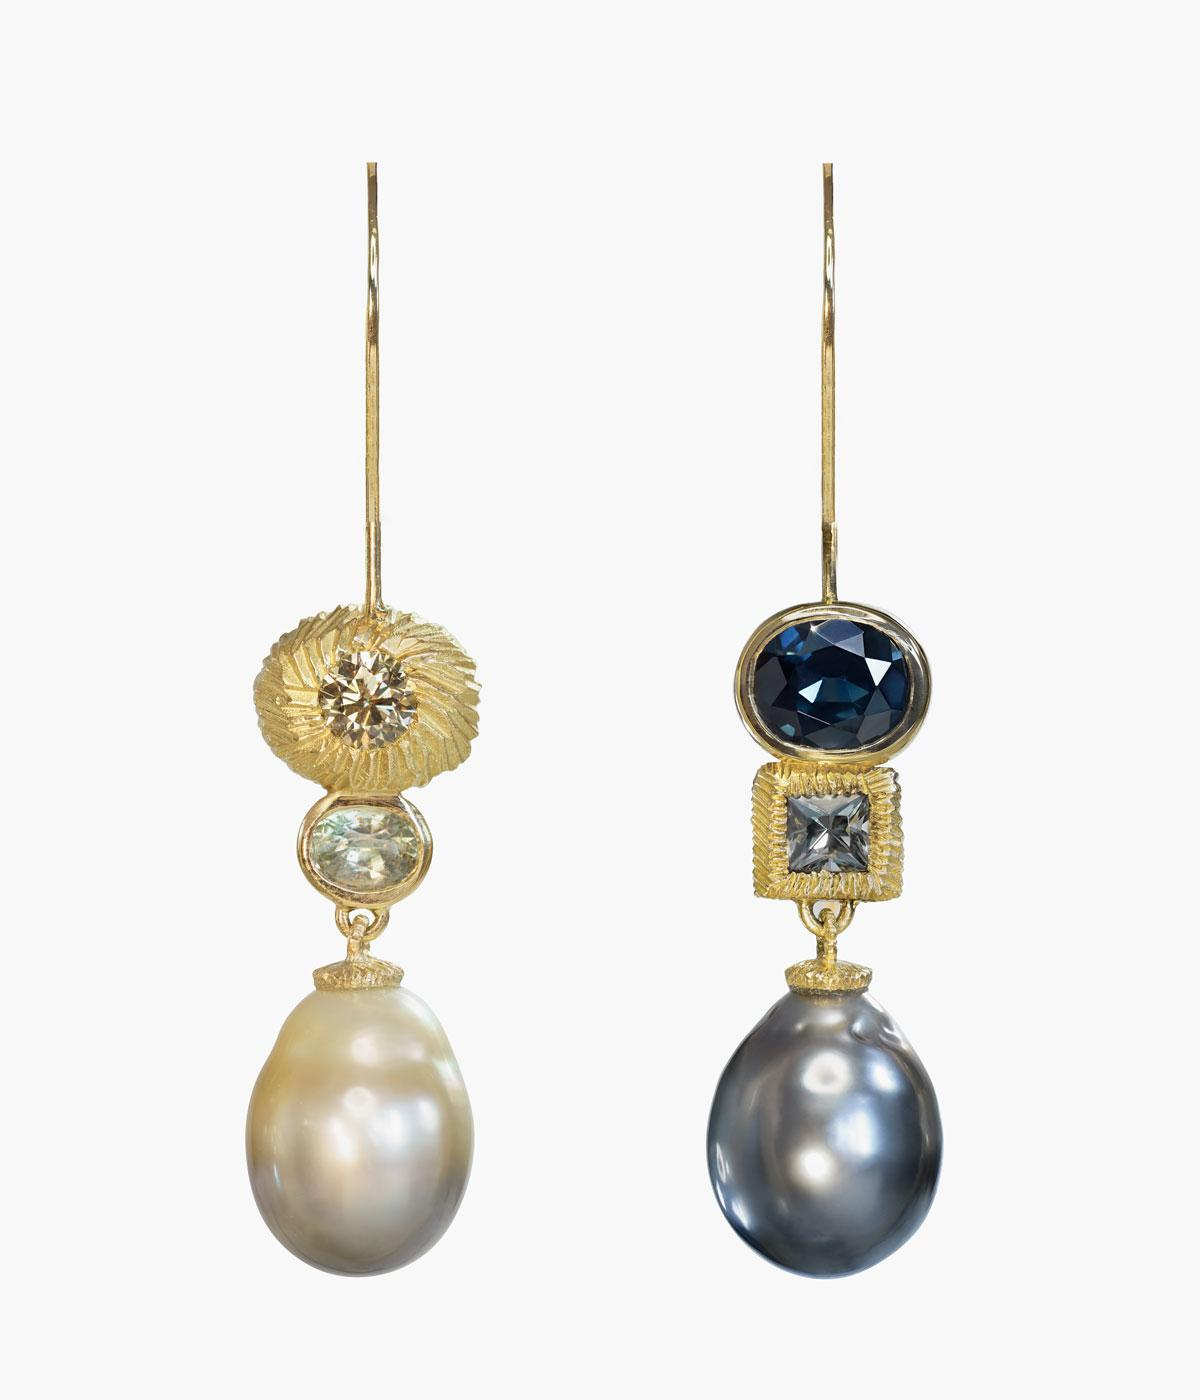 Grey and white pearl earrings with precious stones